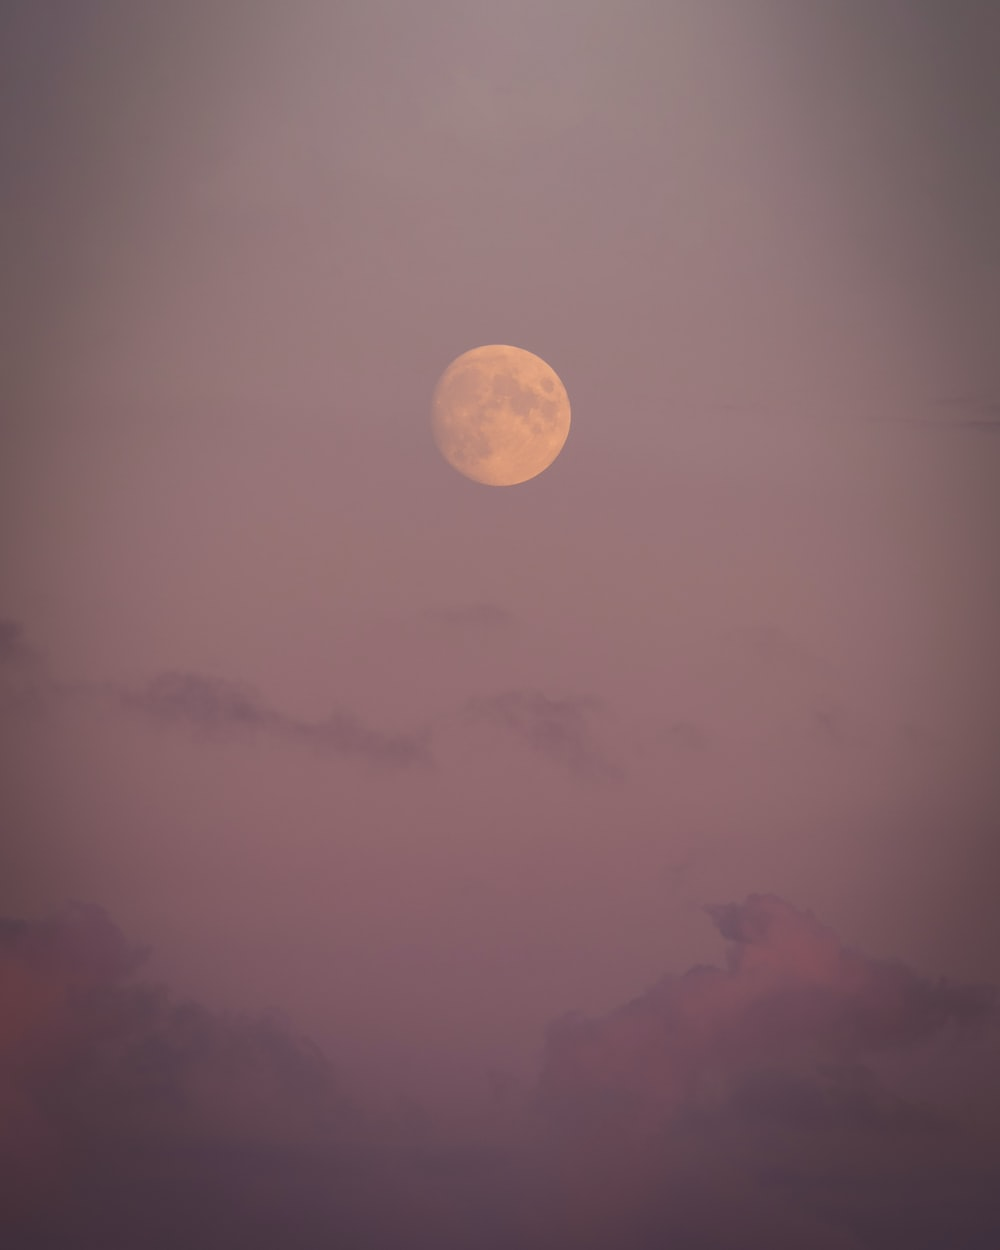 full moon over the clouds